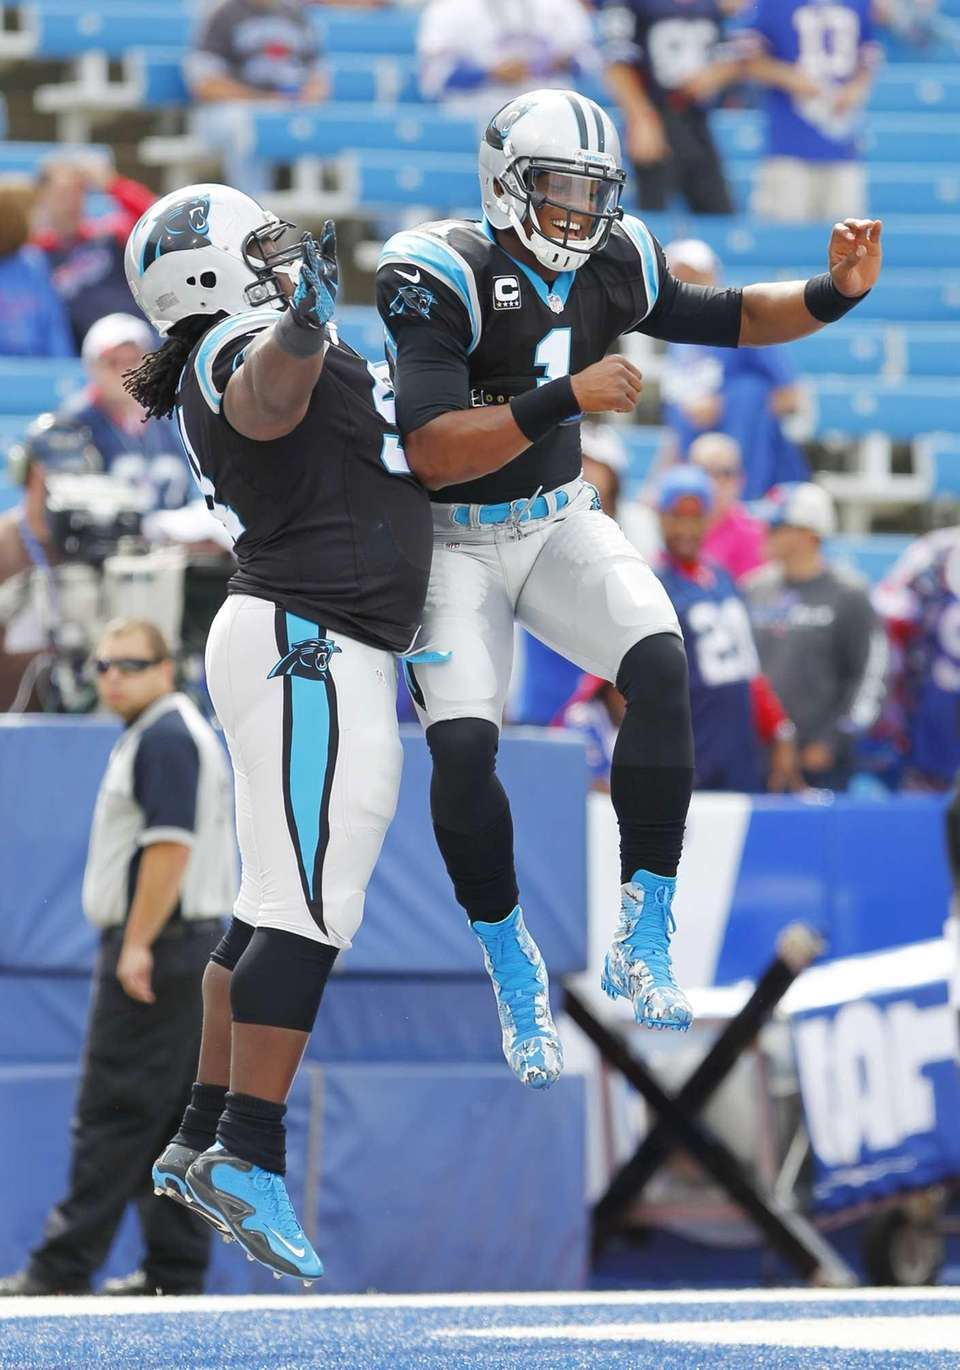 Carolina Panthers quarterback Cam Newton, right, leaps into